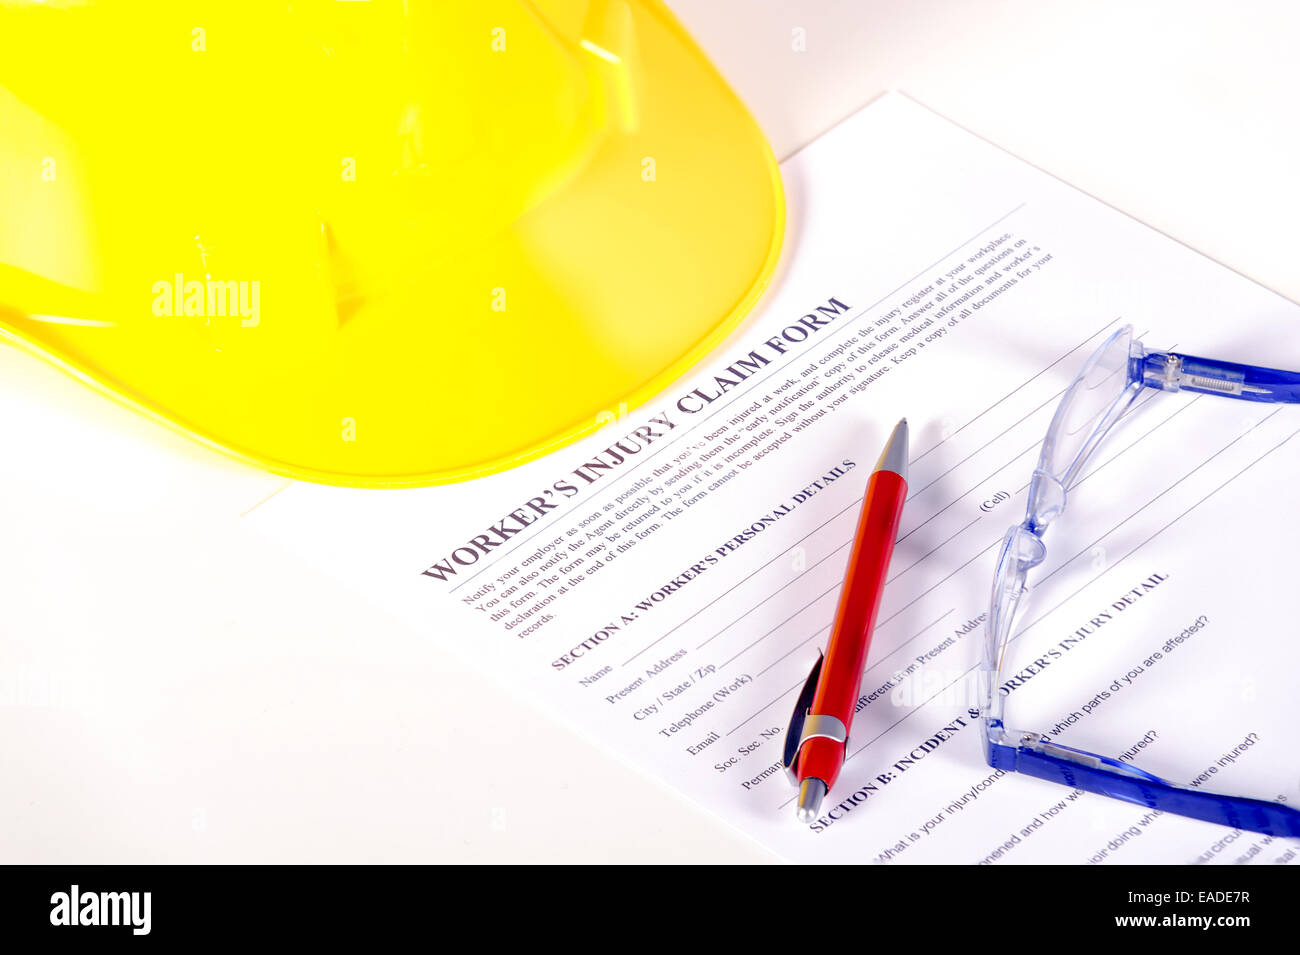 Worker injury claim hard hat with eyeglasses and pen on white background - Stock Image